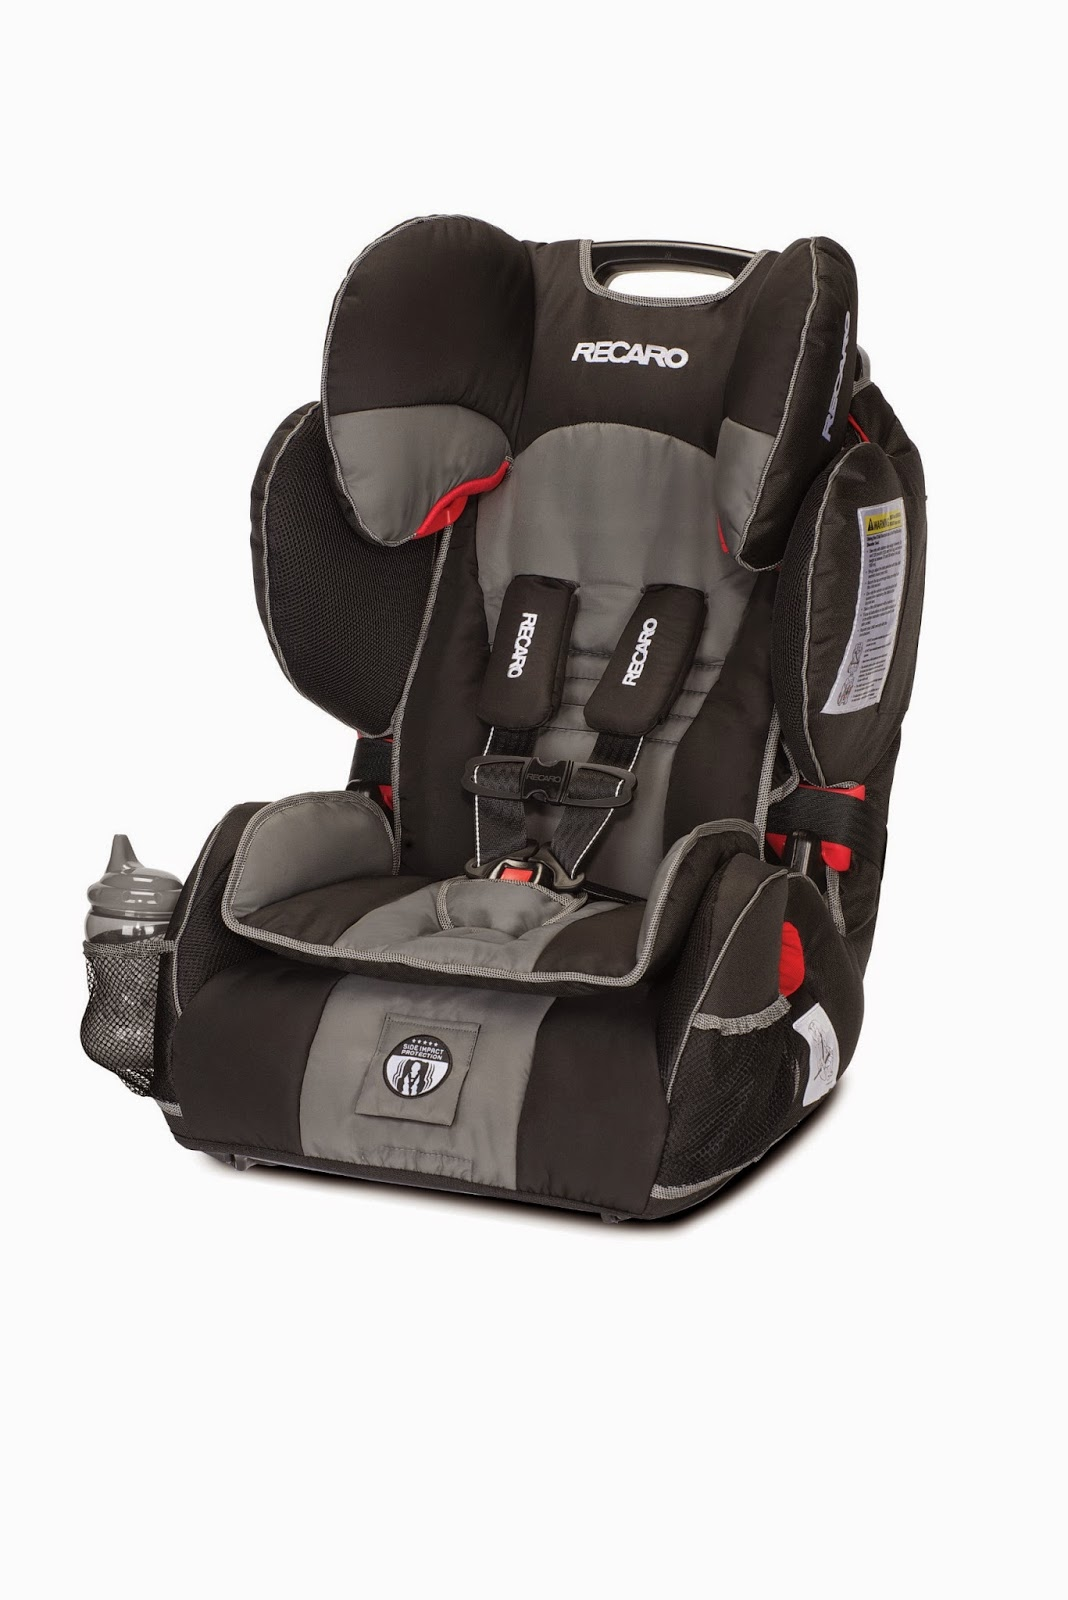 Recaro Performance Sport >> Recaro Performance Sport Combination Seat Review The Car